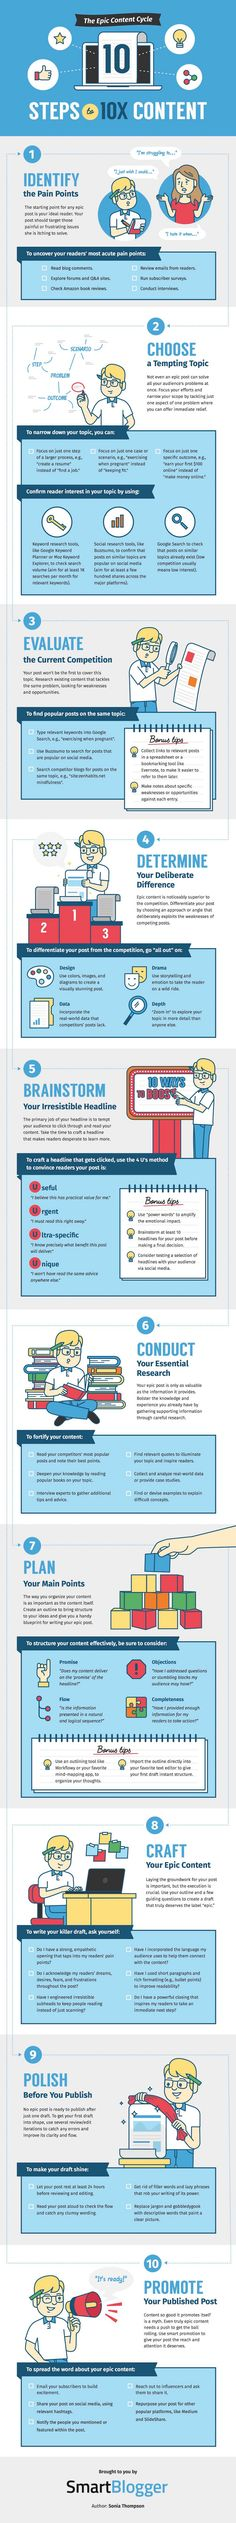 The Epic Content Cycle: 10 Steps to Content [Infographic] Marketing Trends, Marketing Tools, Business Marketing, Internet Marketing, Online Marketing, Social Media Marketing, Digital Marketing, Inbound Marketing, Online Business